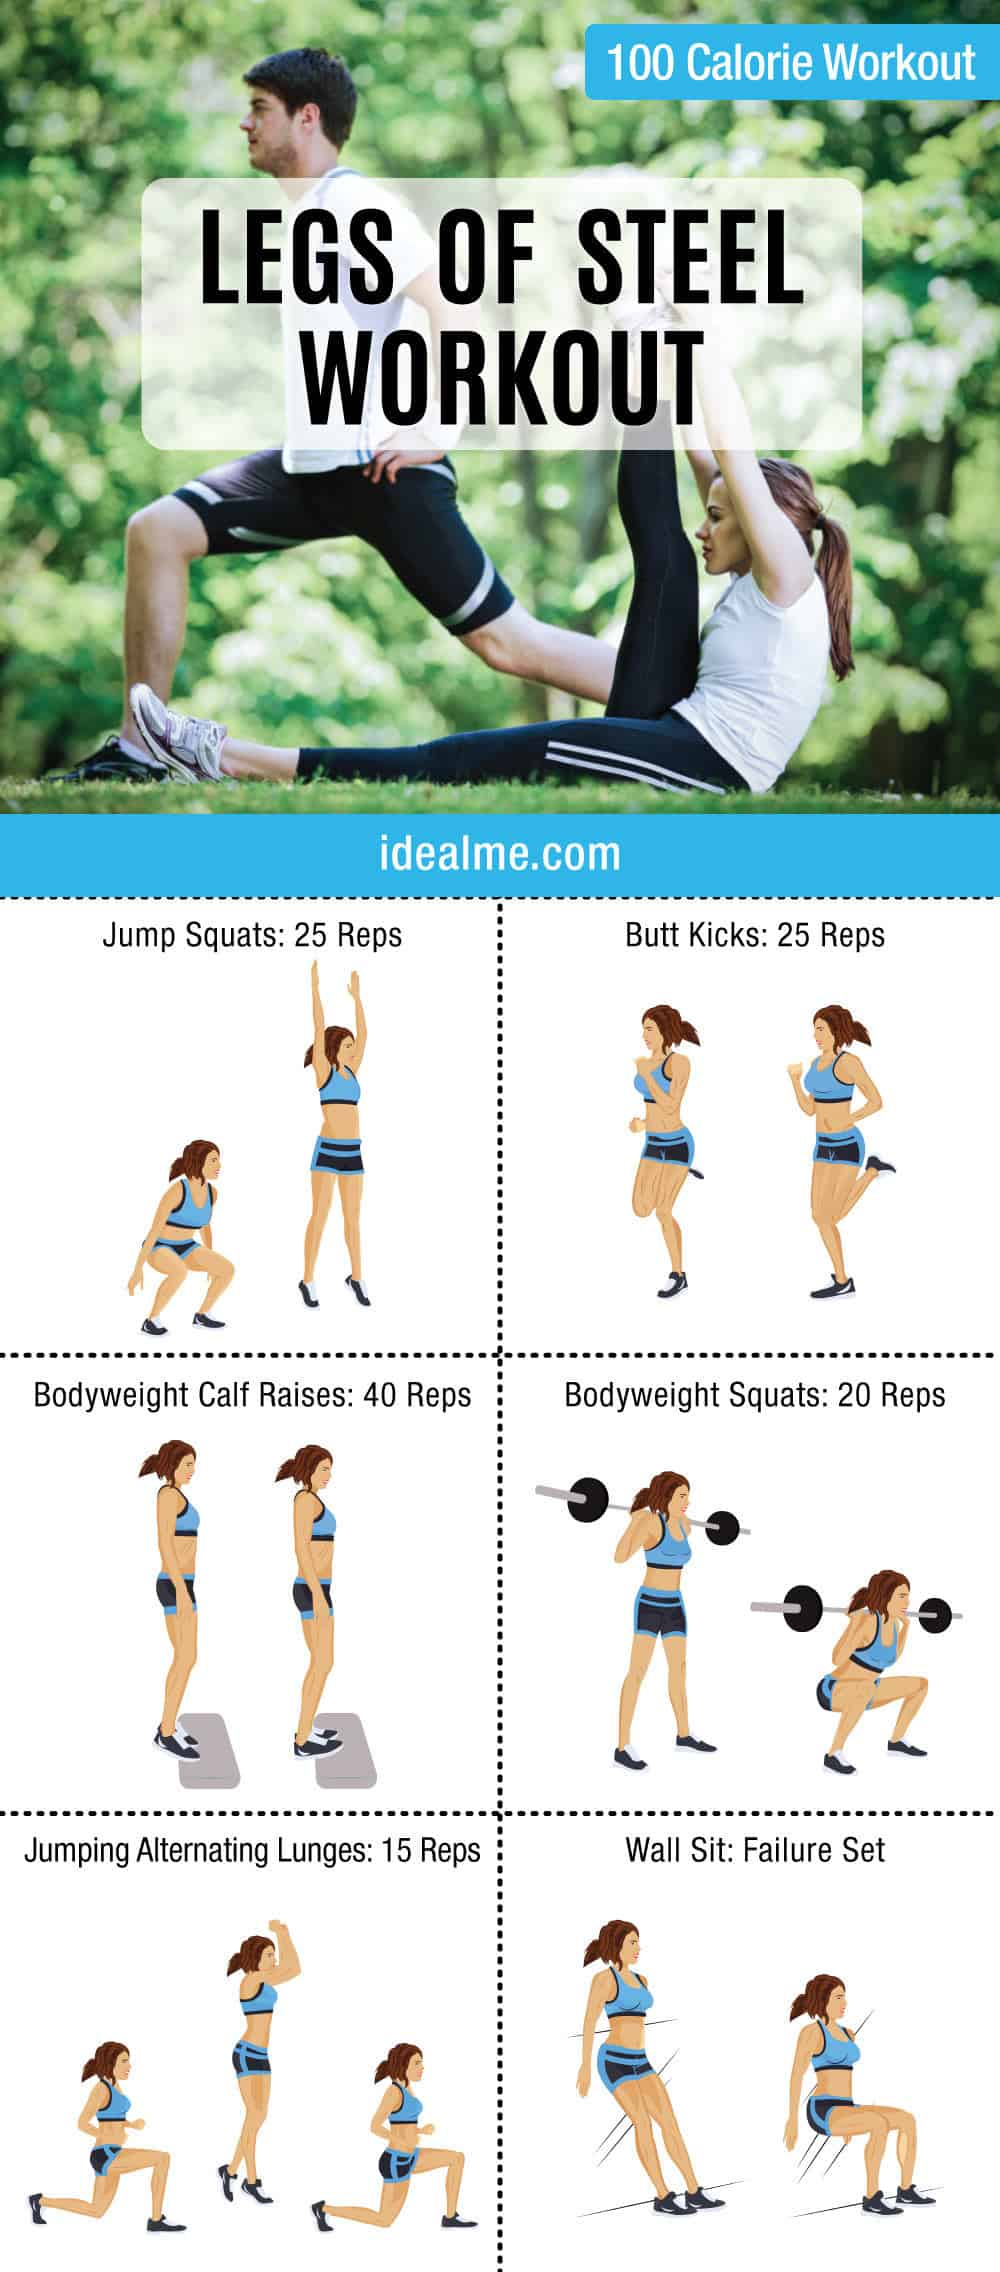 Legs Of Steel 100 Calorie Workout